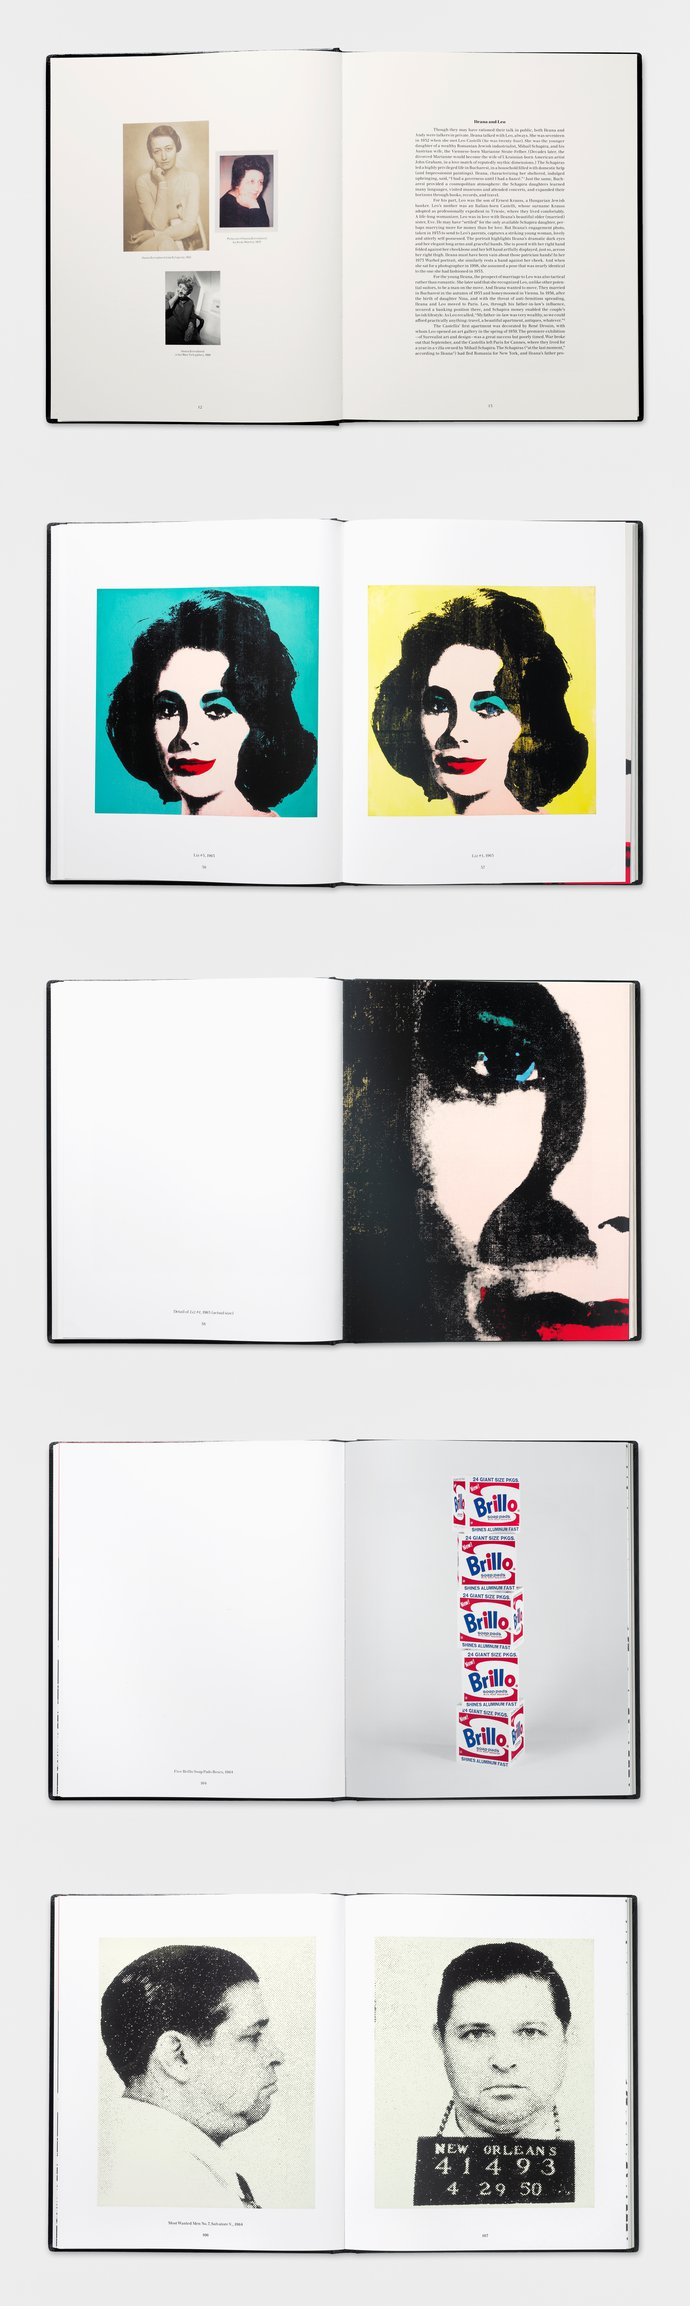 Gagosian – Warhol from the Sonnabend Collection, 2009 (Publication), image 3